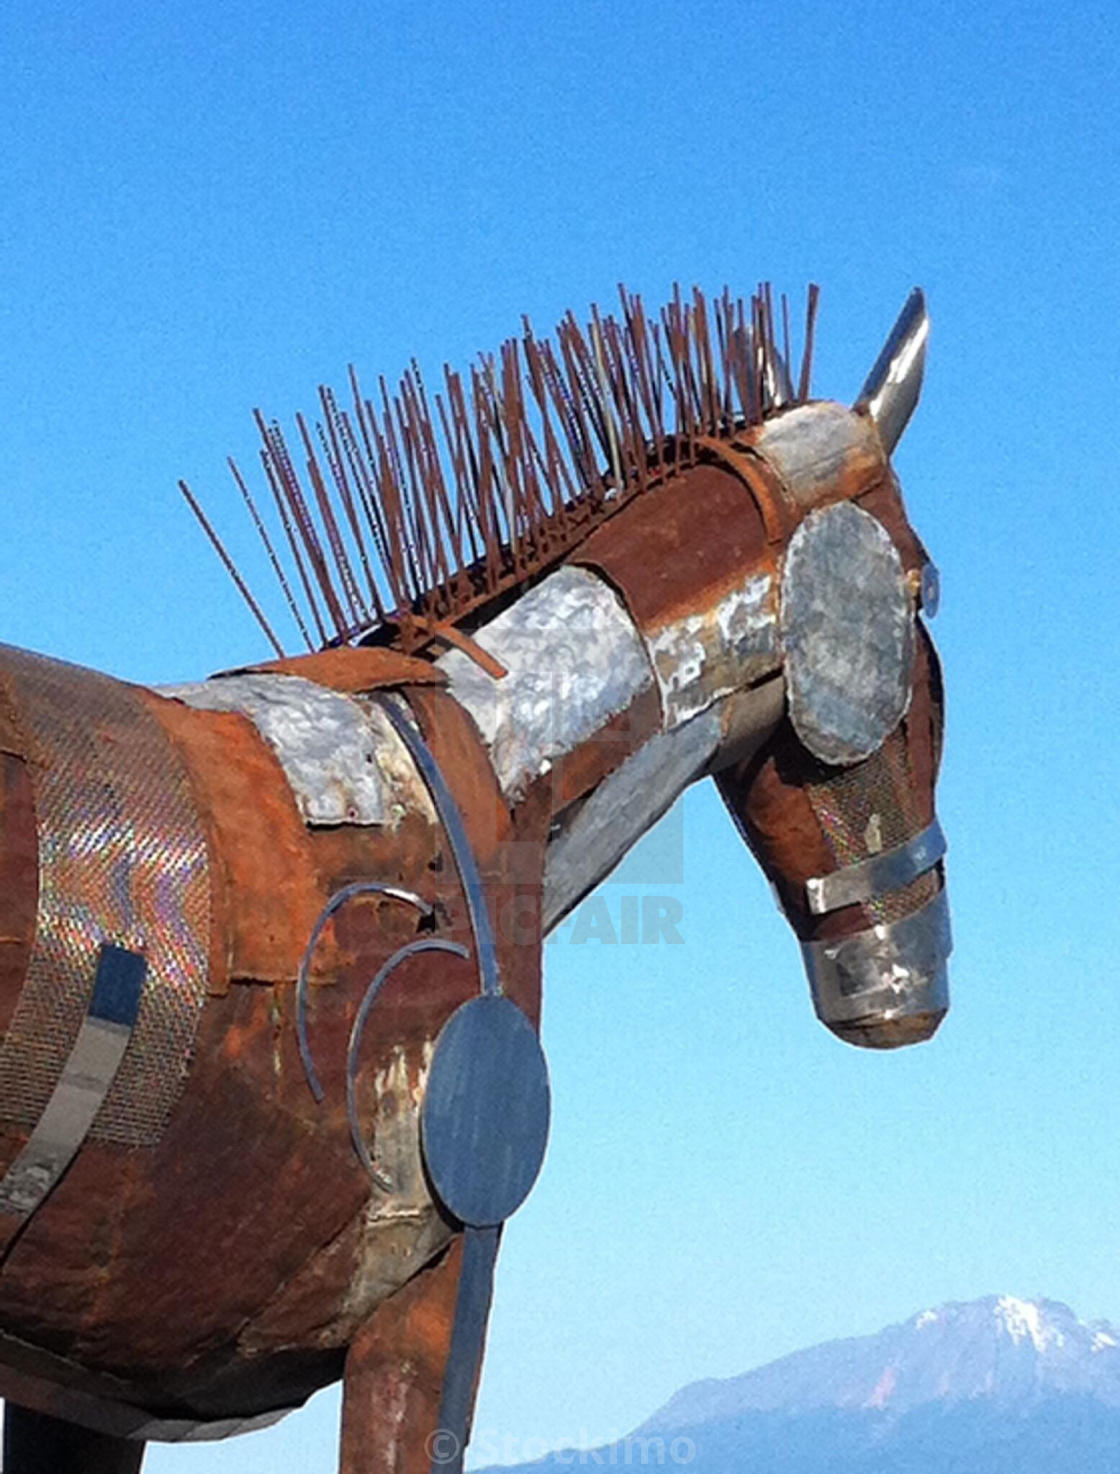 Scrap Metal Horse Sculpture Osorno Chile License Download Or Print For 31 00 Photos Picfair